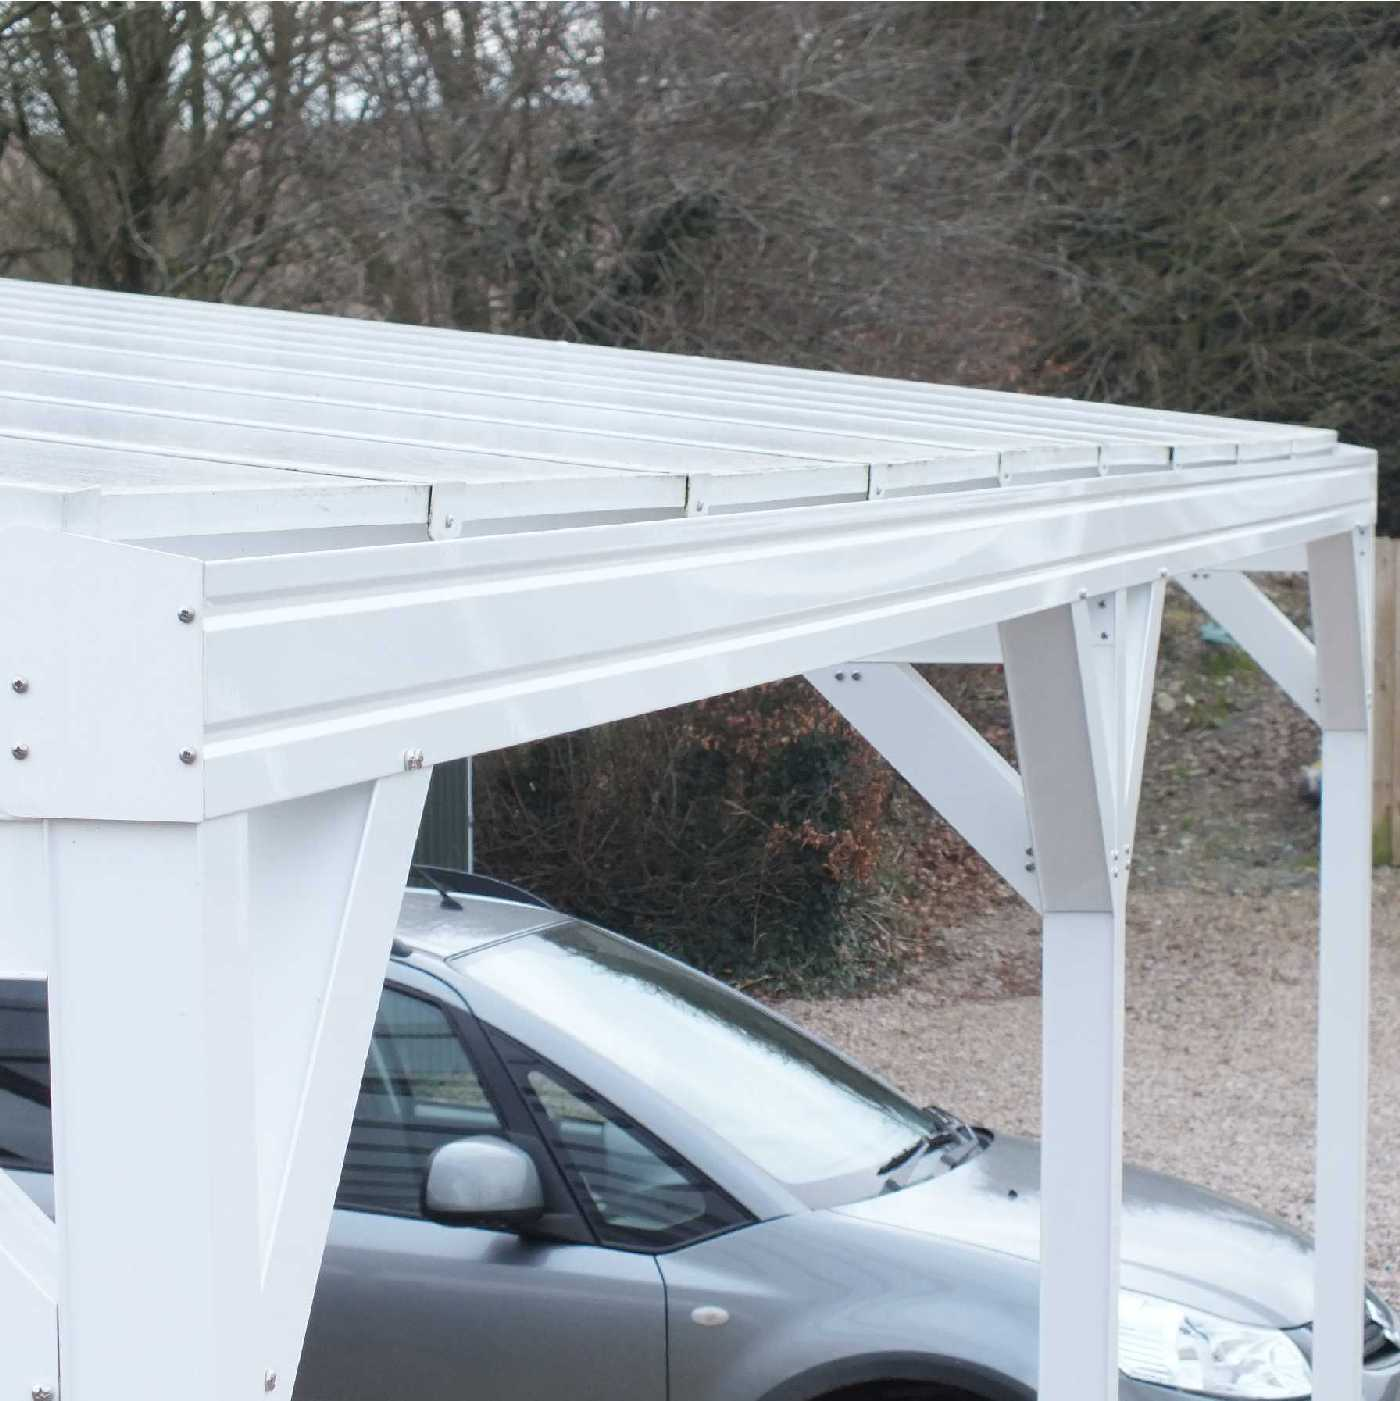 Omega Smart Free-Standing, MonoPitch Roof Canopy with 16mm Polycarbonate Glazing - 8.4m (W) x 4.0m (P), (8) Supporting Posts from Omega Build